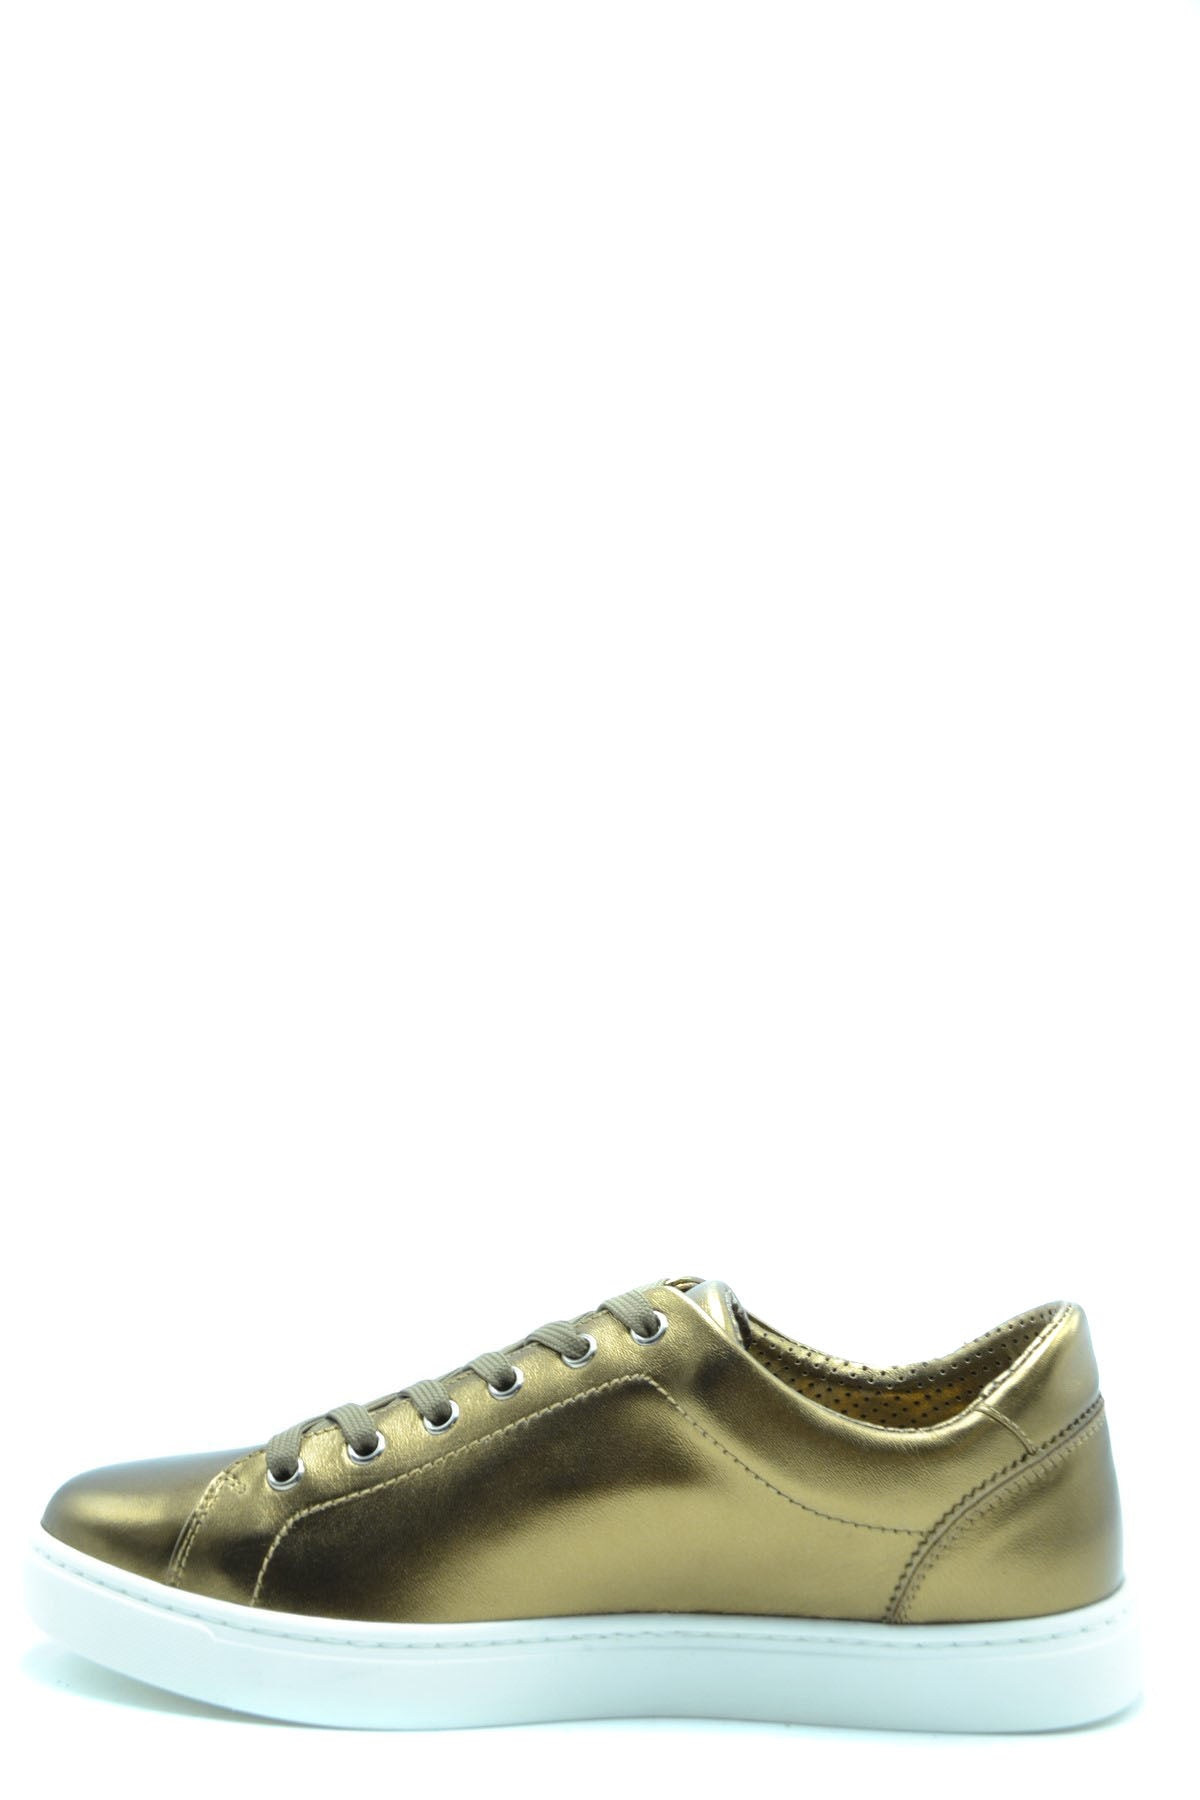 Shoes Dolce & Gabbana-Sports & Entertainment - Sneakers-Product Details Terms: New With LabelMain Color: GoldType Of Accessory: ShoesSeason: Fall / WinterMade In: ItalyGender: ManSize: EuComposition: Leather 100%Year: 2020Manufacturer Part Number: Cs1362 Ac955 89900-Keyomi-Sook